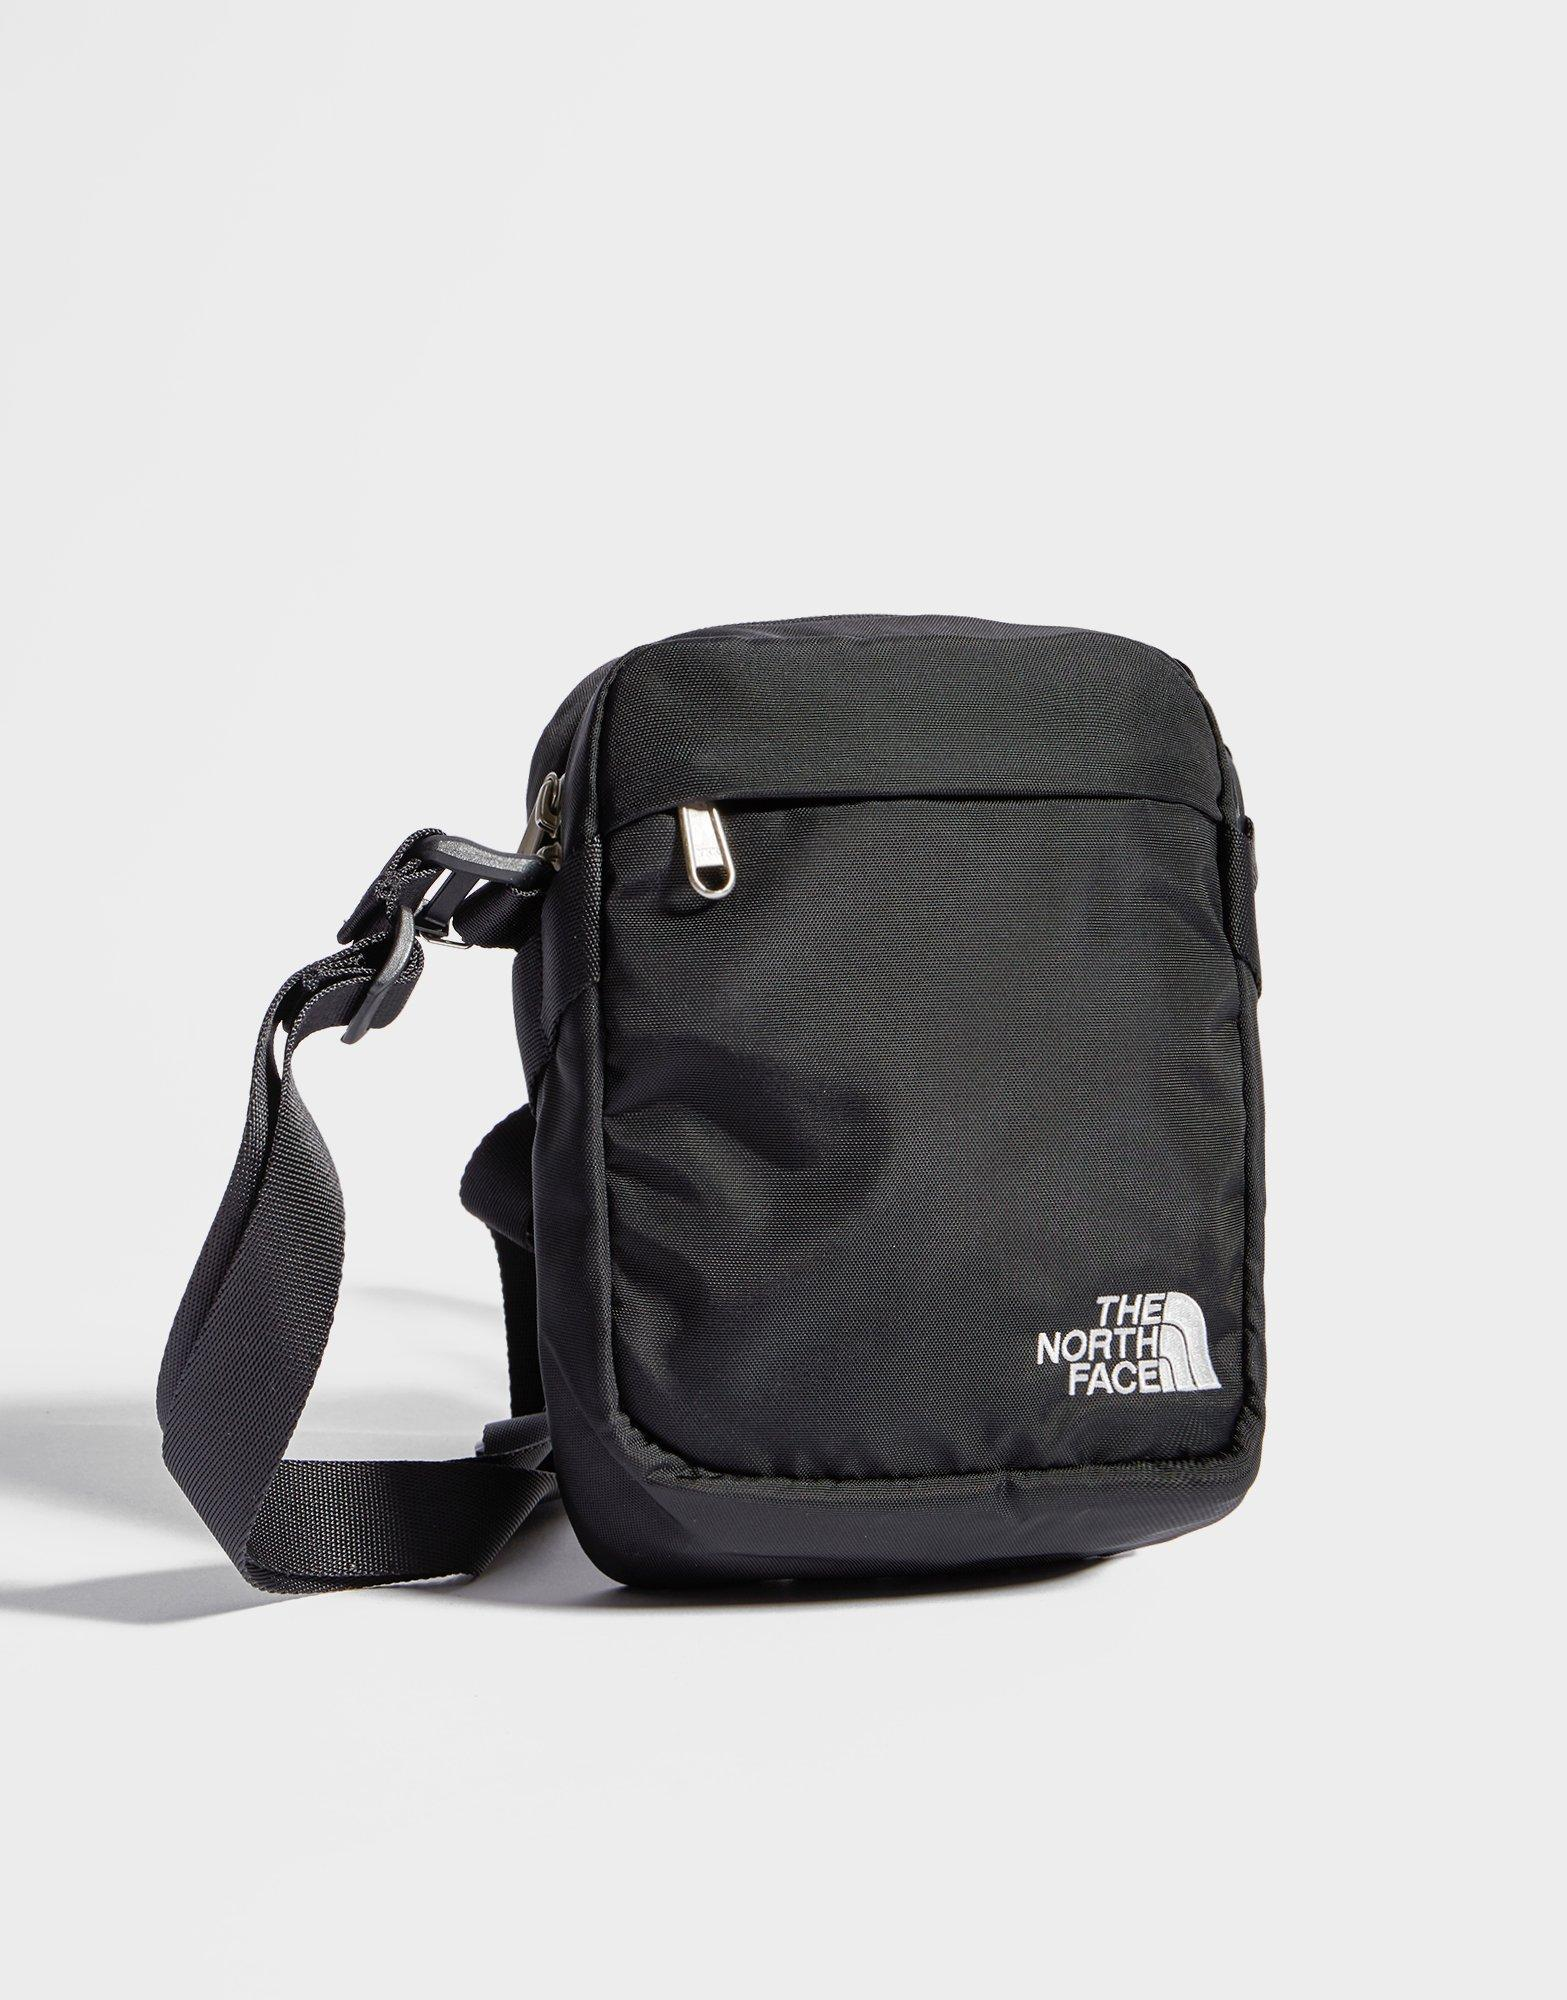 9cde596f35e ... promo codes The North Face Convertible Crossbody Bag in Black for Men -  Lyst 77557 19d10  coupon codes Lyst - Adidas Originals ...